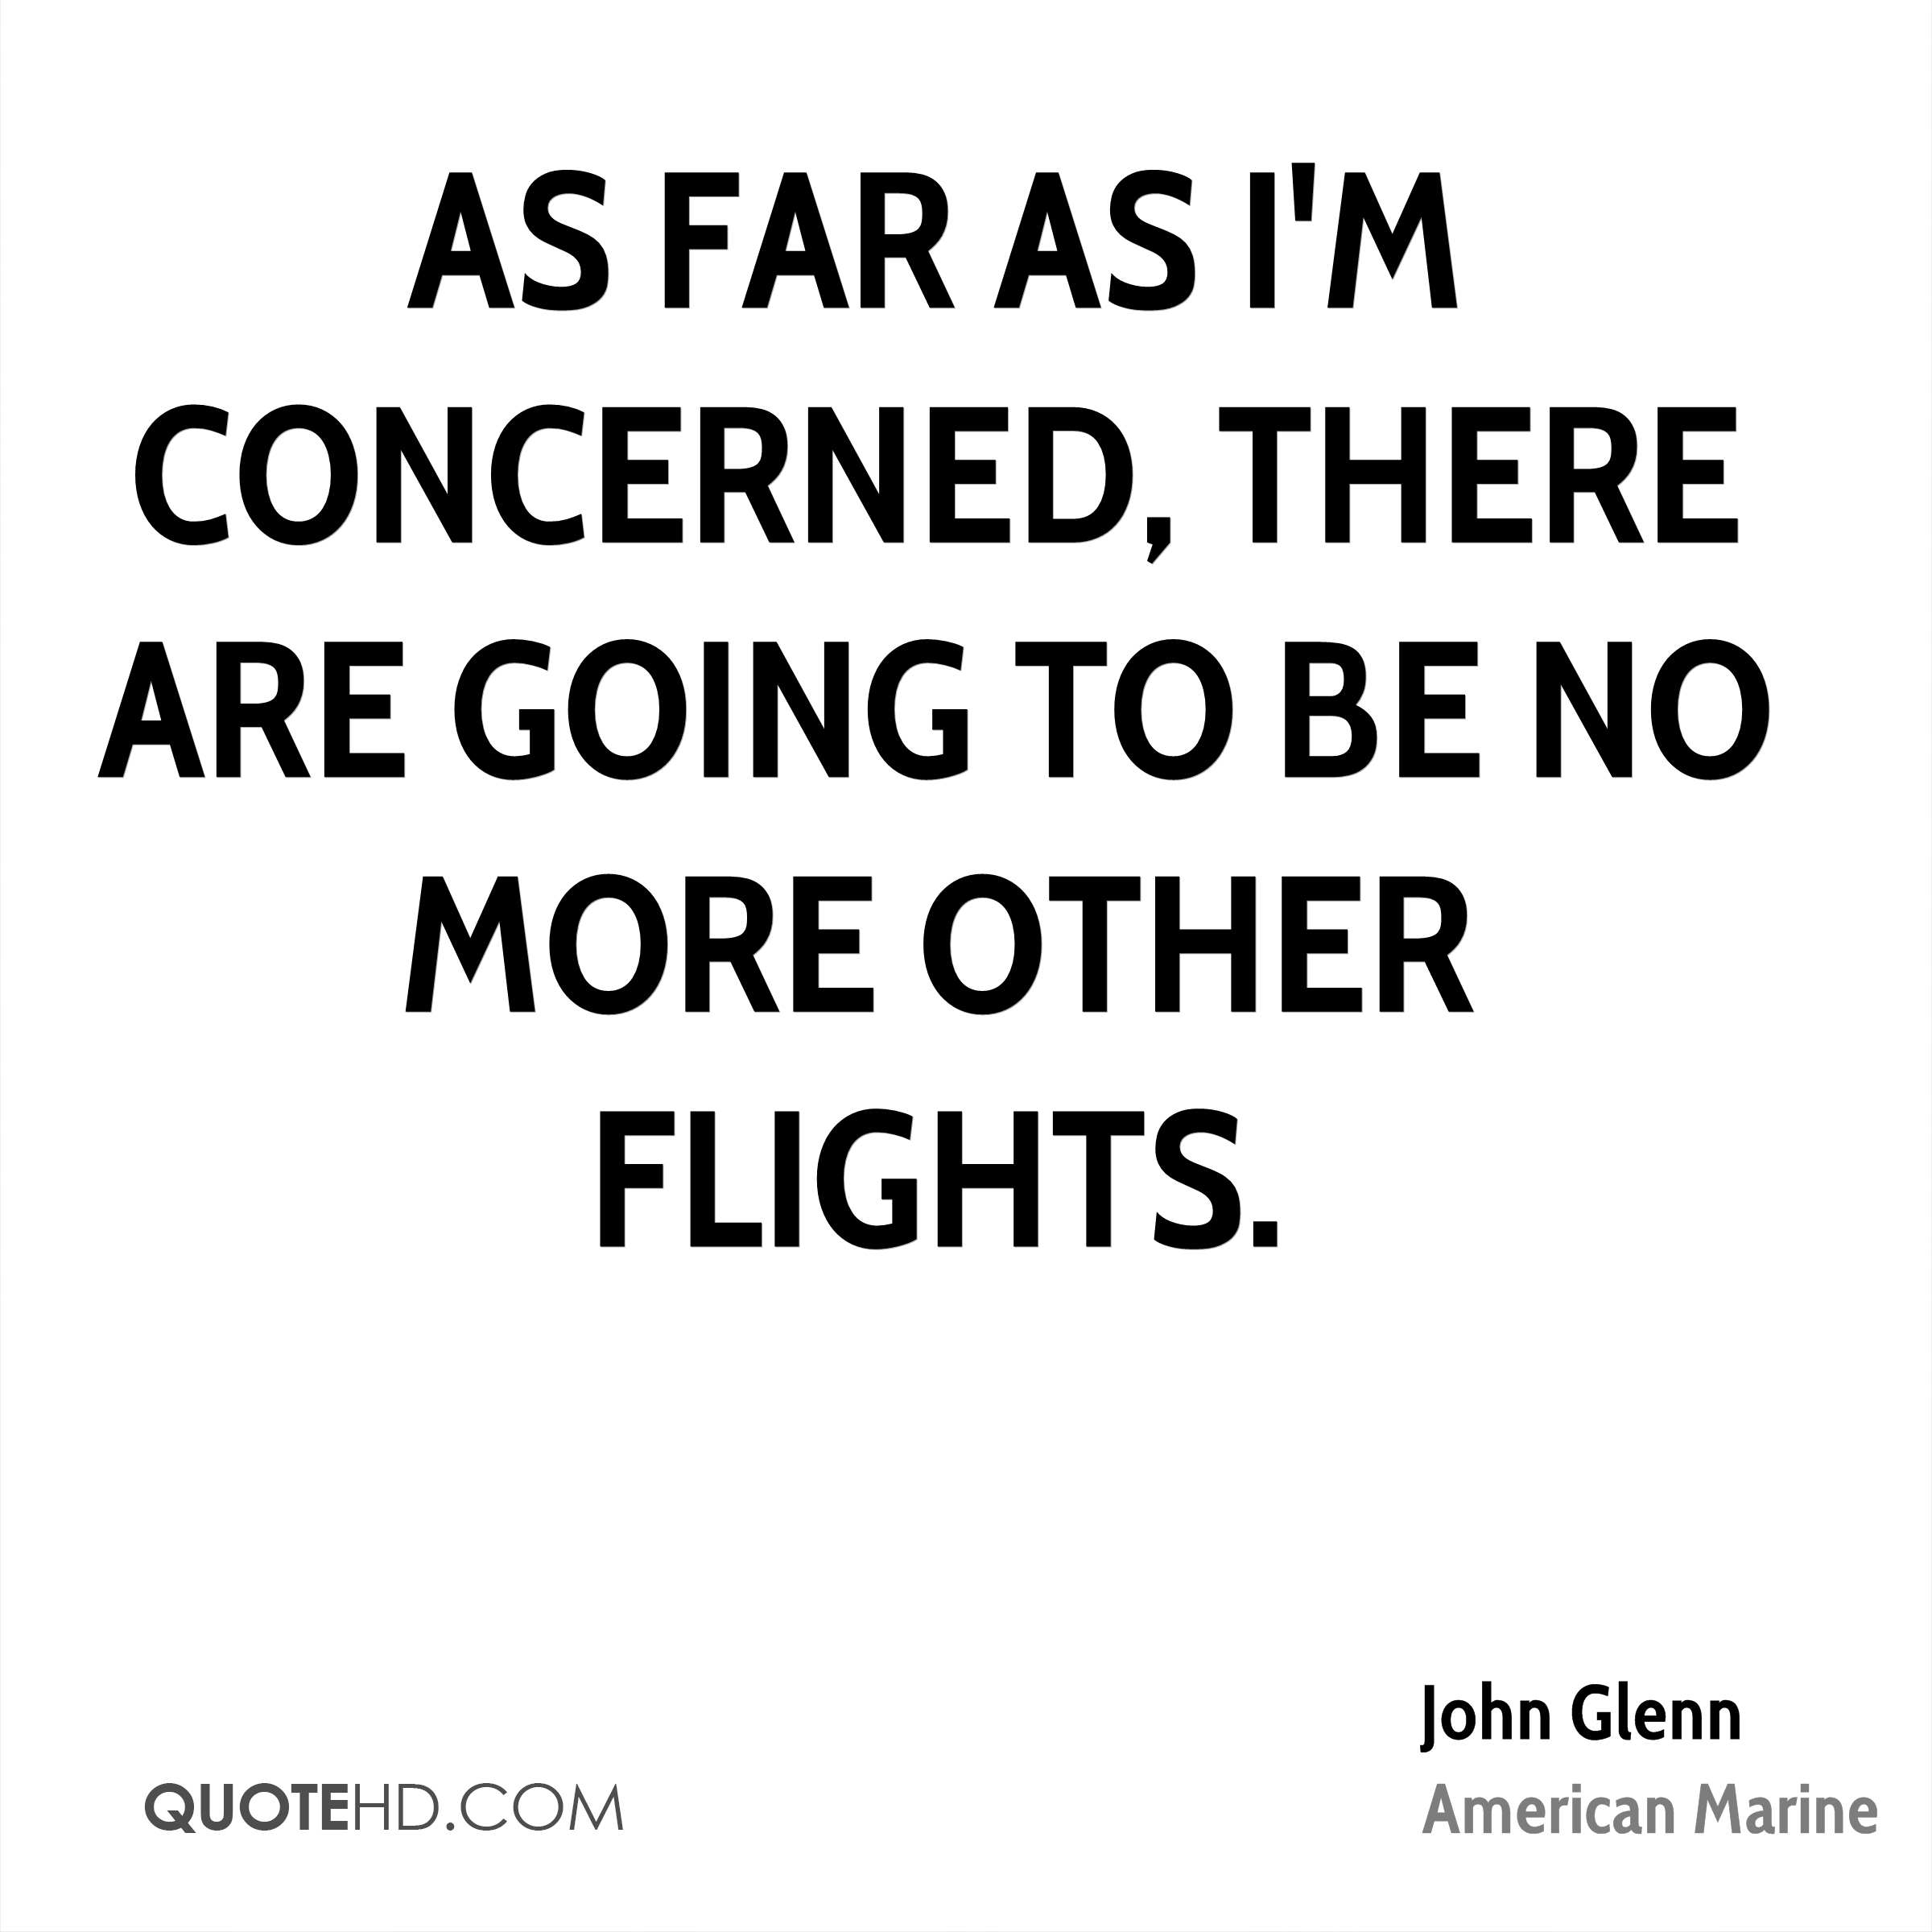 As far as I'm concerned, there are going to be no more other flights.